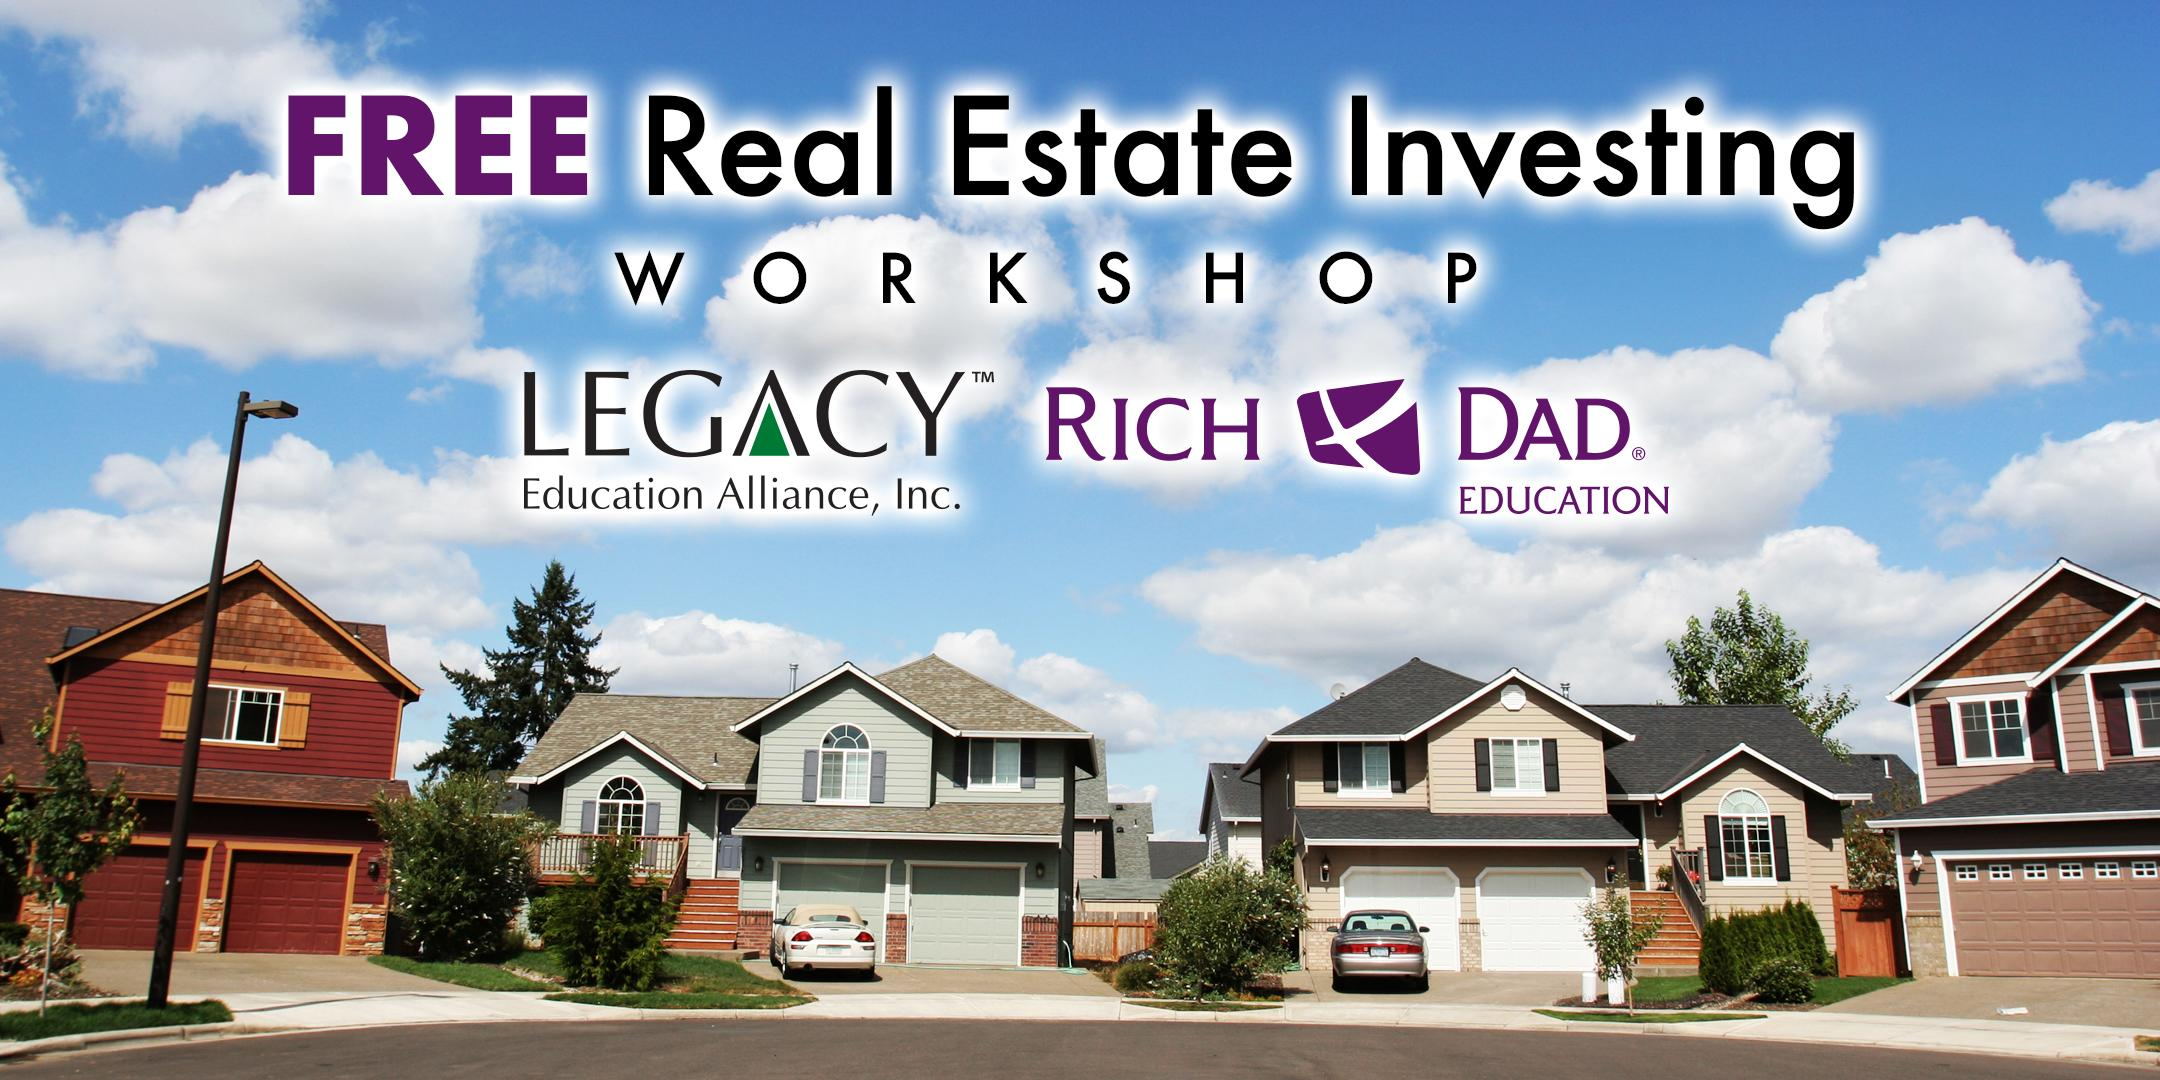 FREE Rich Dad Education Real Estate Workshop